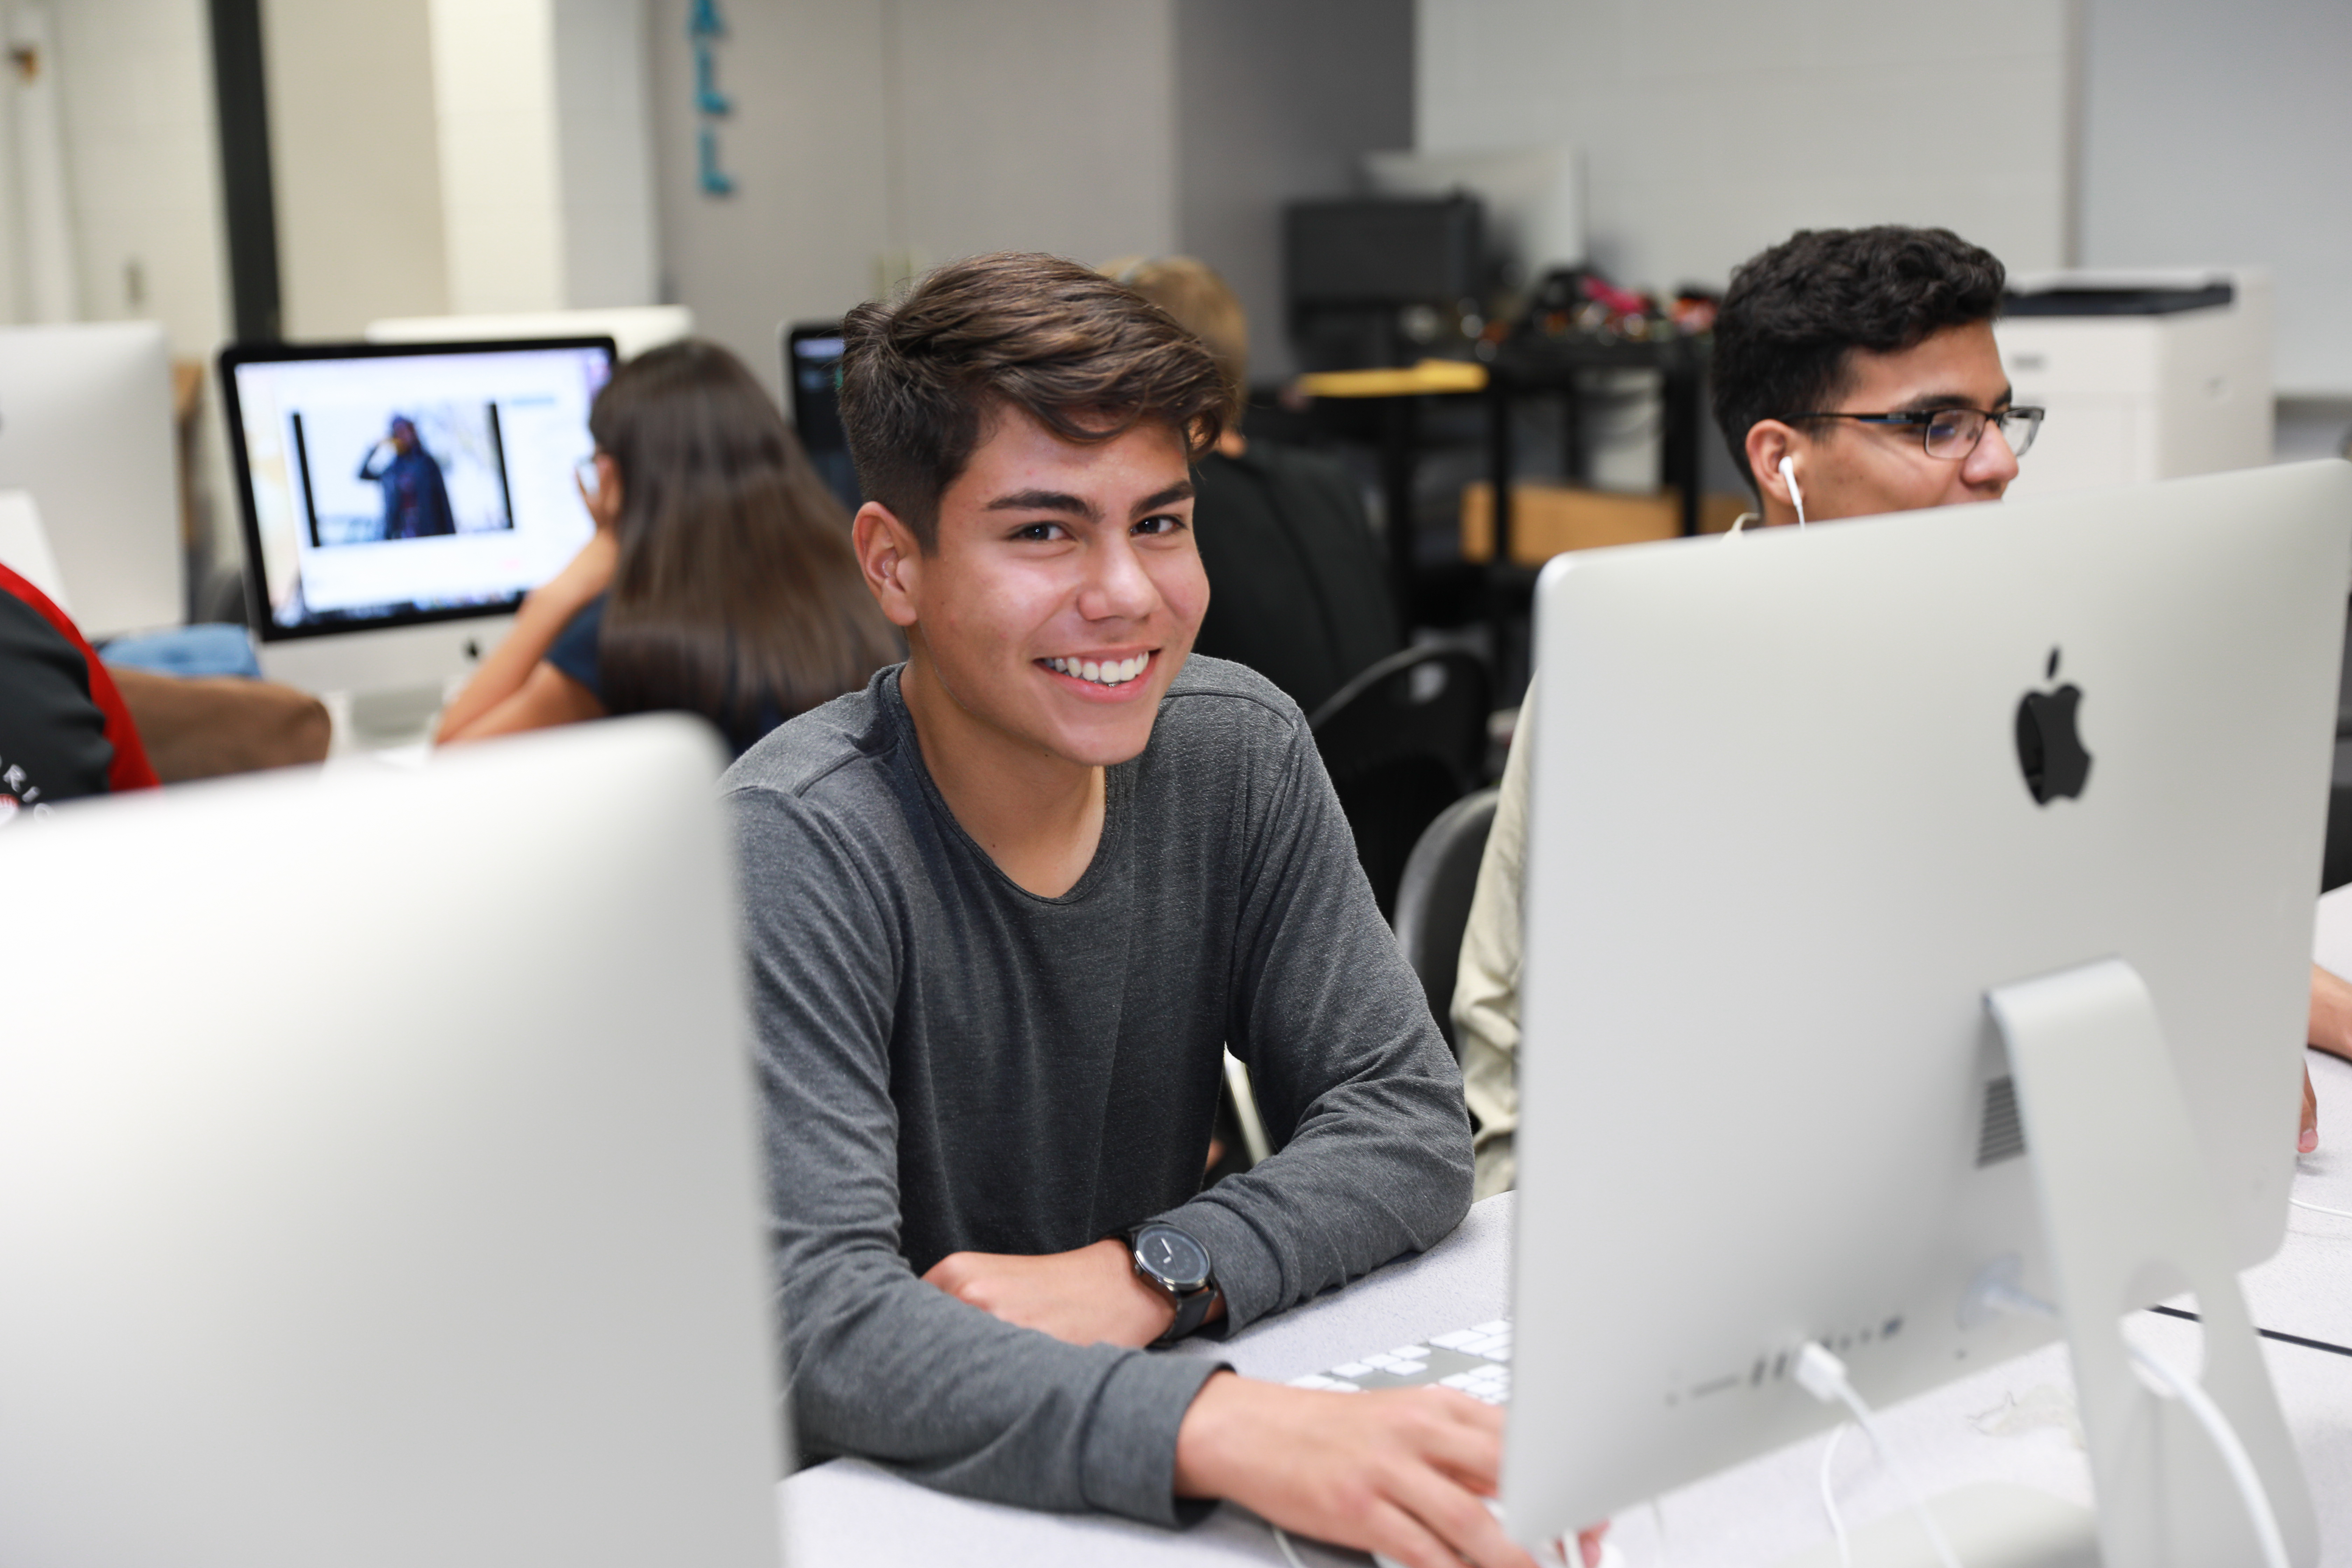 Teenager smiling at the camera with other students working in a computer lab